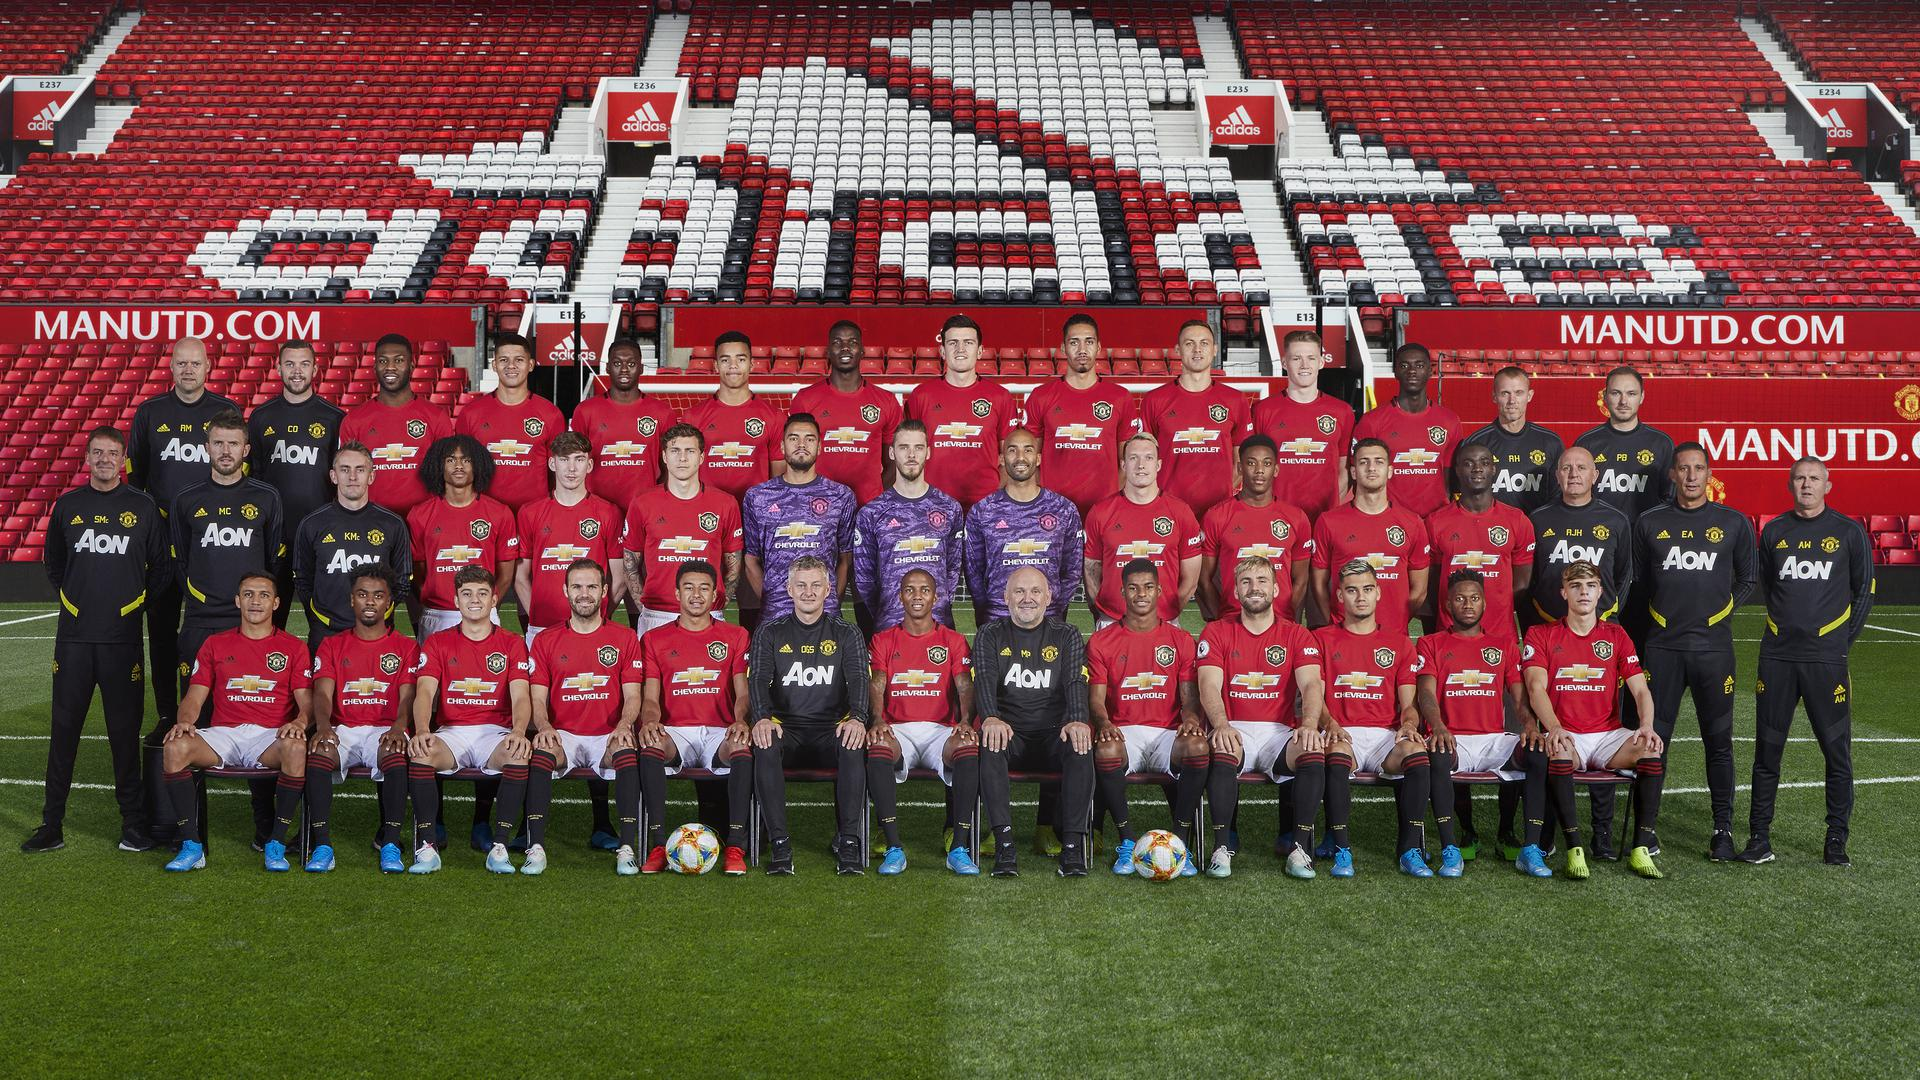 Ficial Manchester United Website